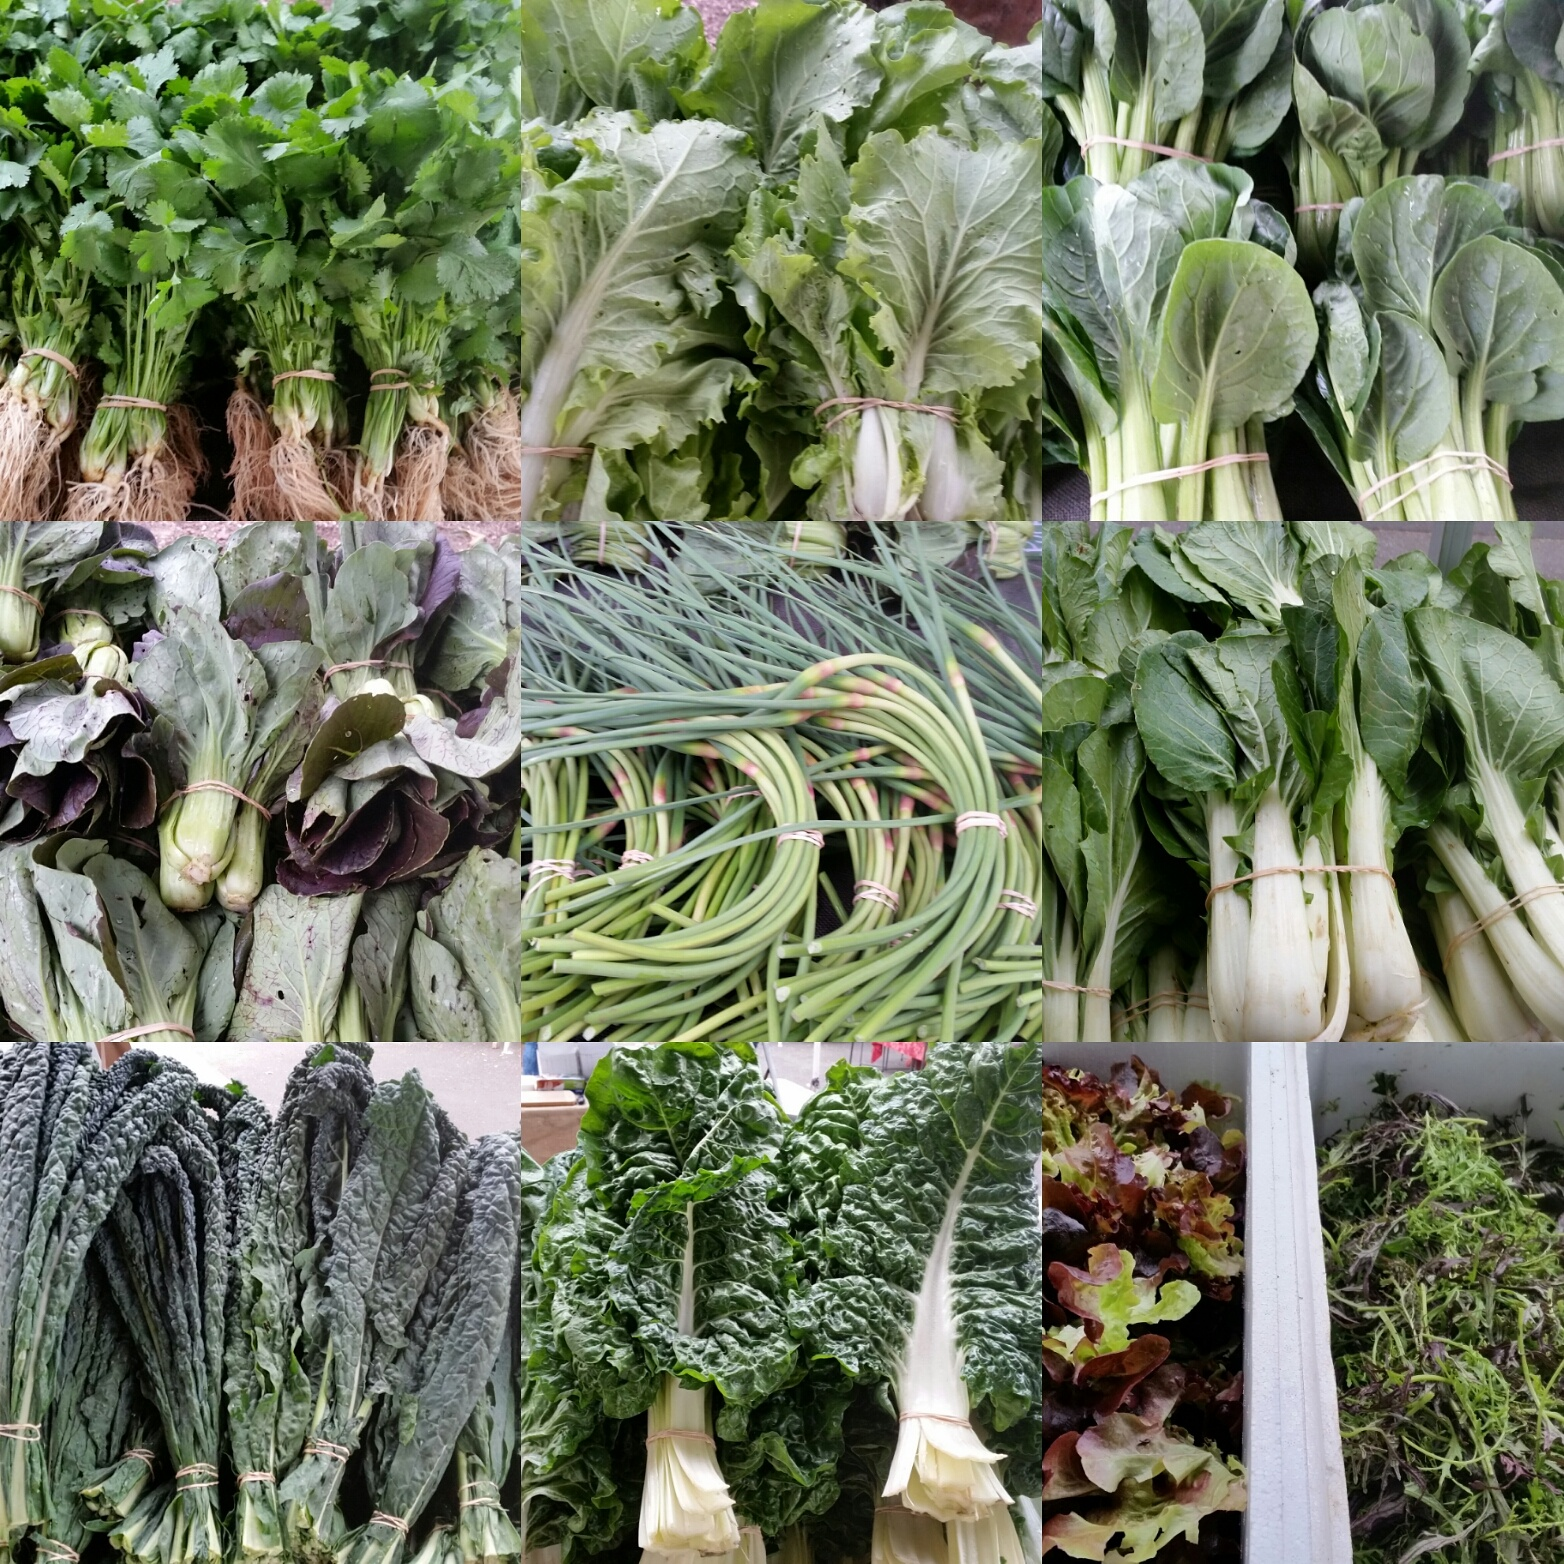 Our garlic scapes and some of our herbs and leafy greens